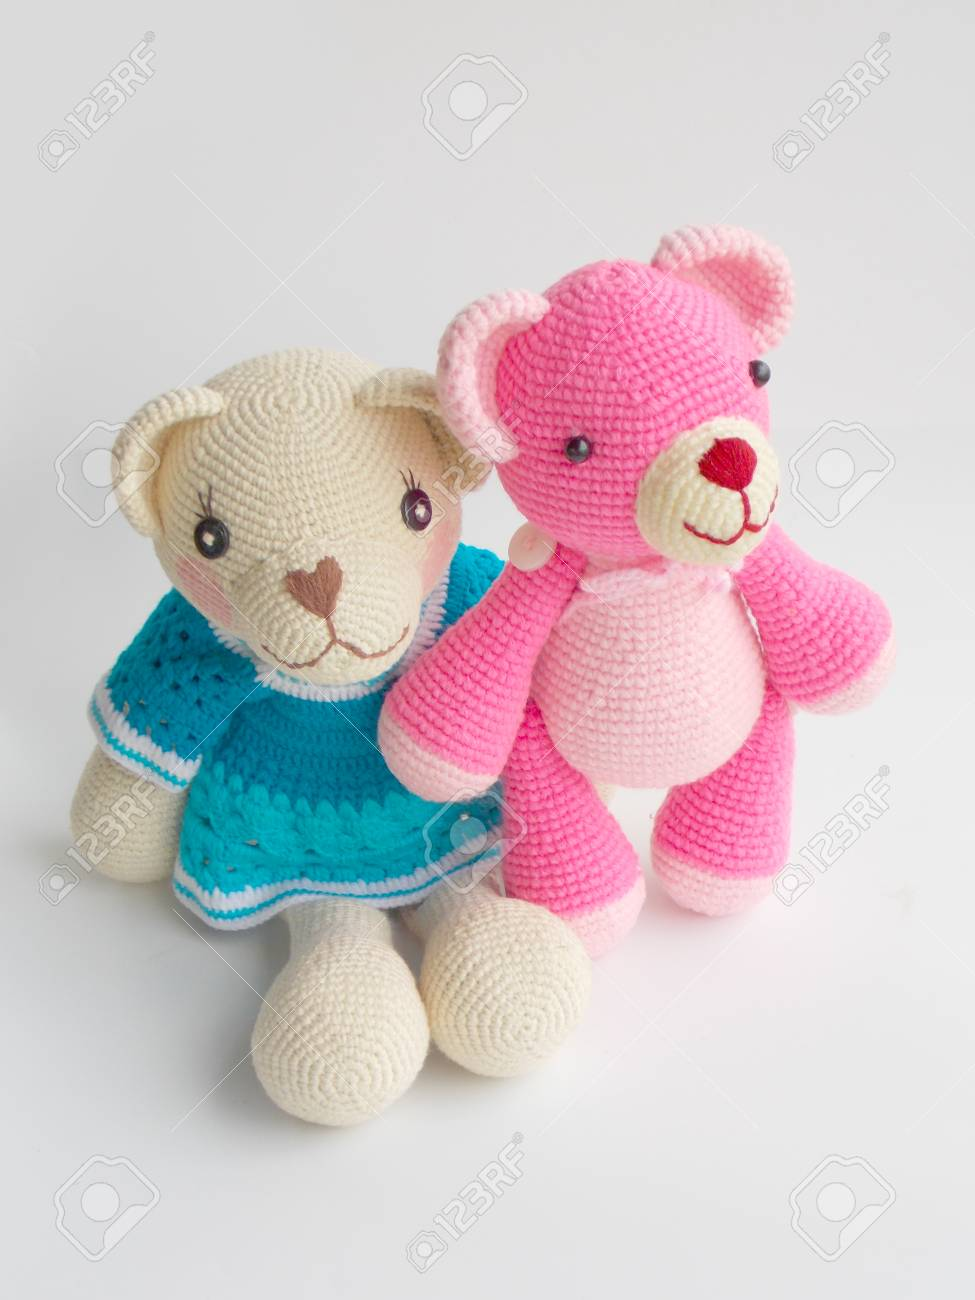 Amigurumi Crochet Teddy Bear Toys Free Patterns (With images ... | 1300x975